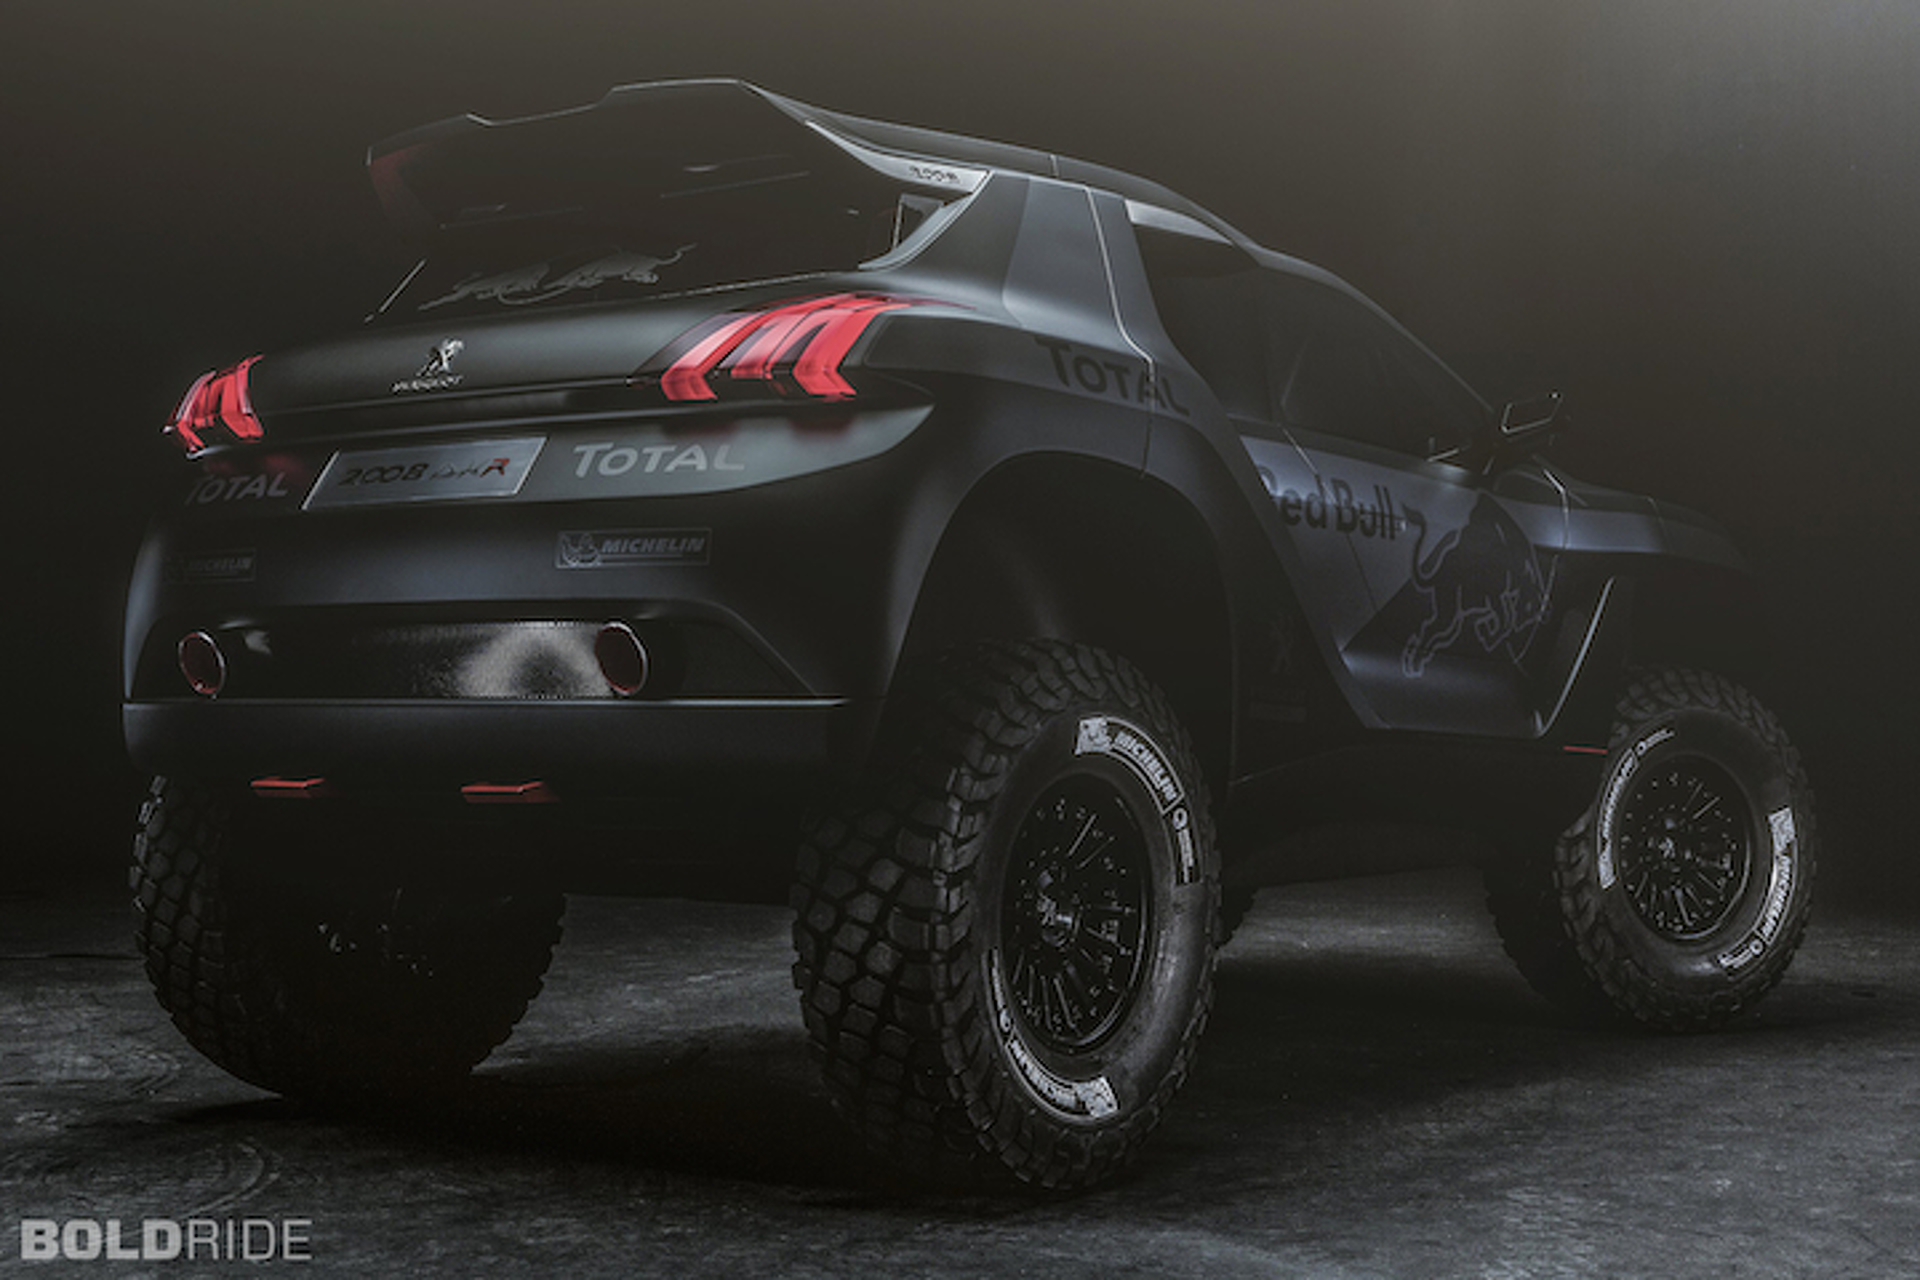 Peugeot Taking Dakar Head On With Gnarly 2008 DKR Concept